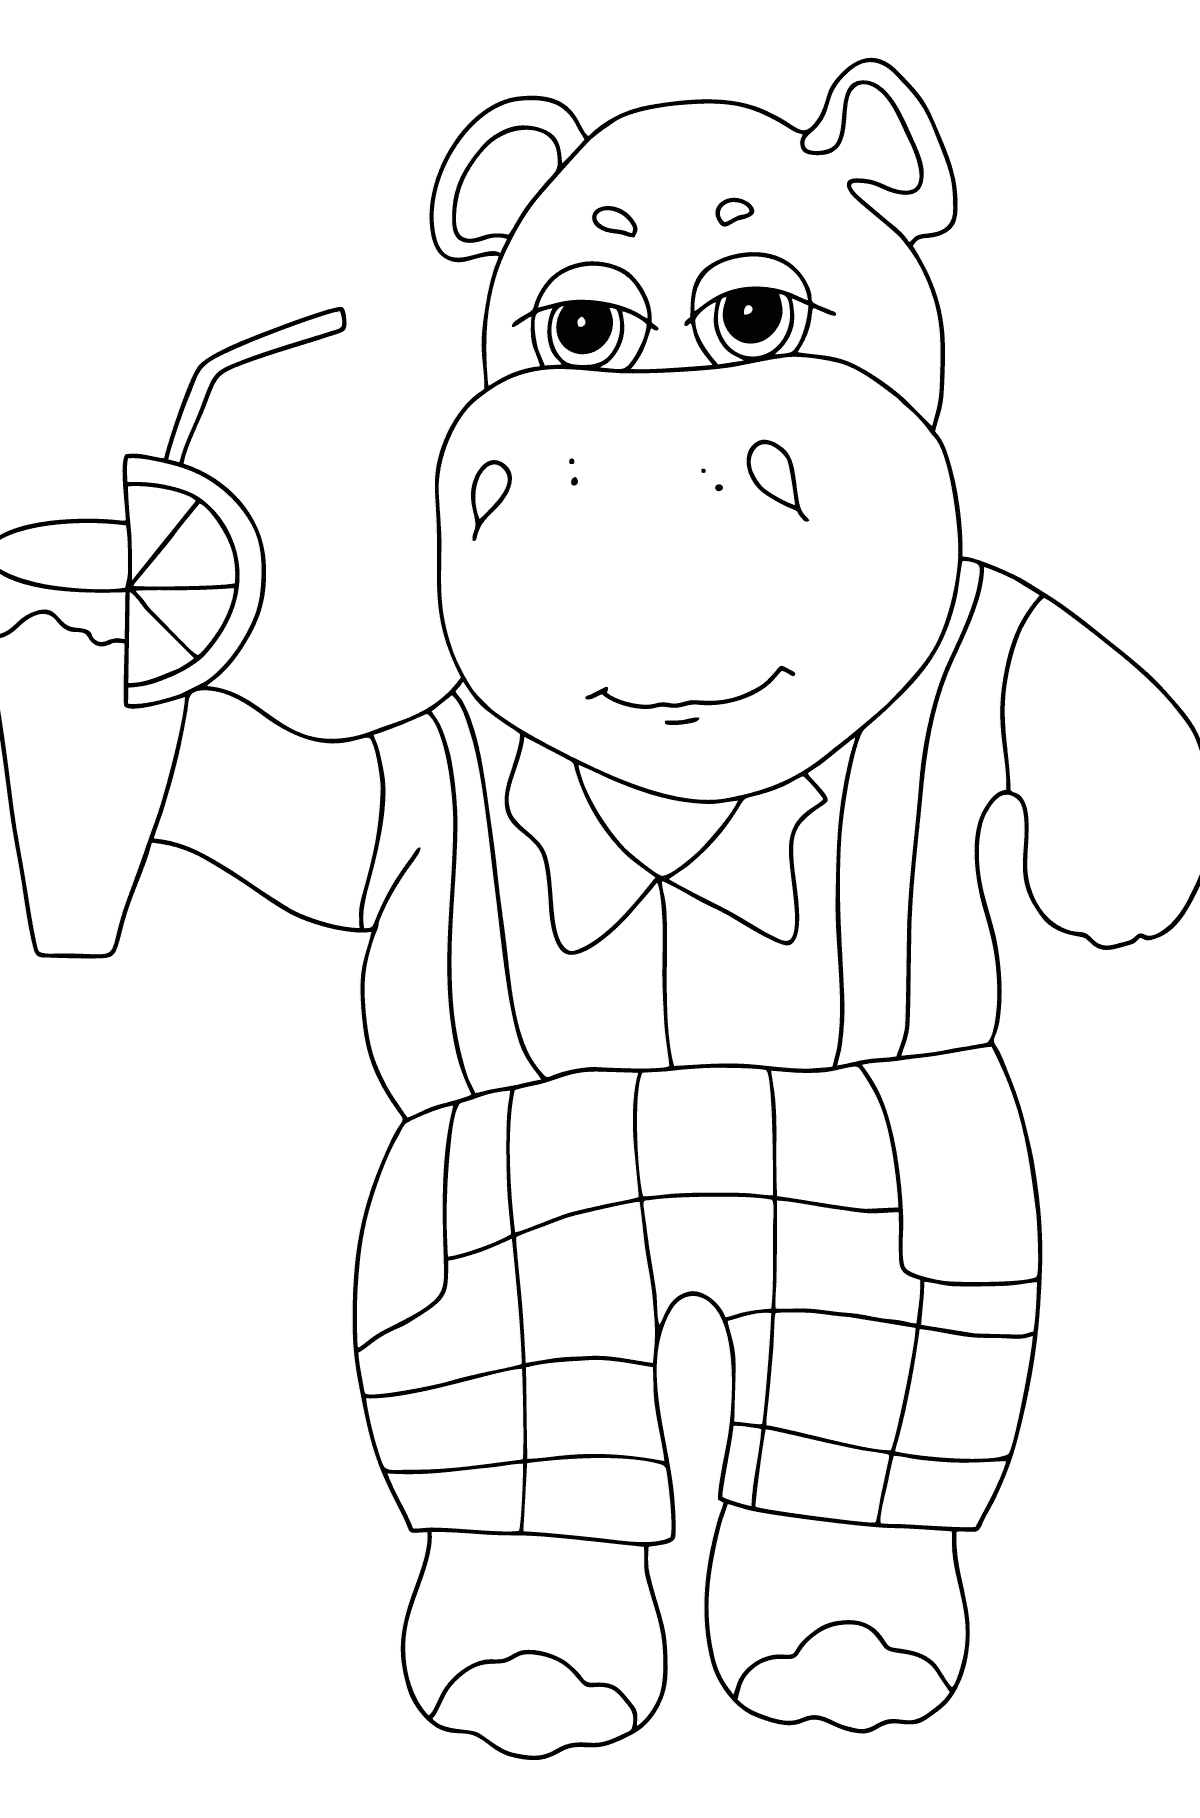 Coloring Page - A Hippo on a Beach with Juice for Children